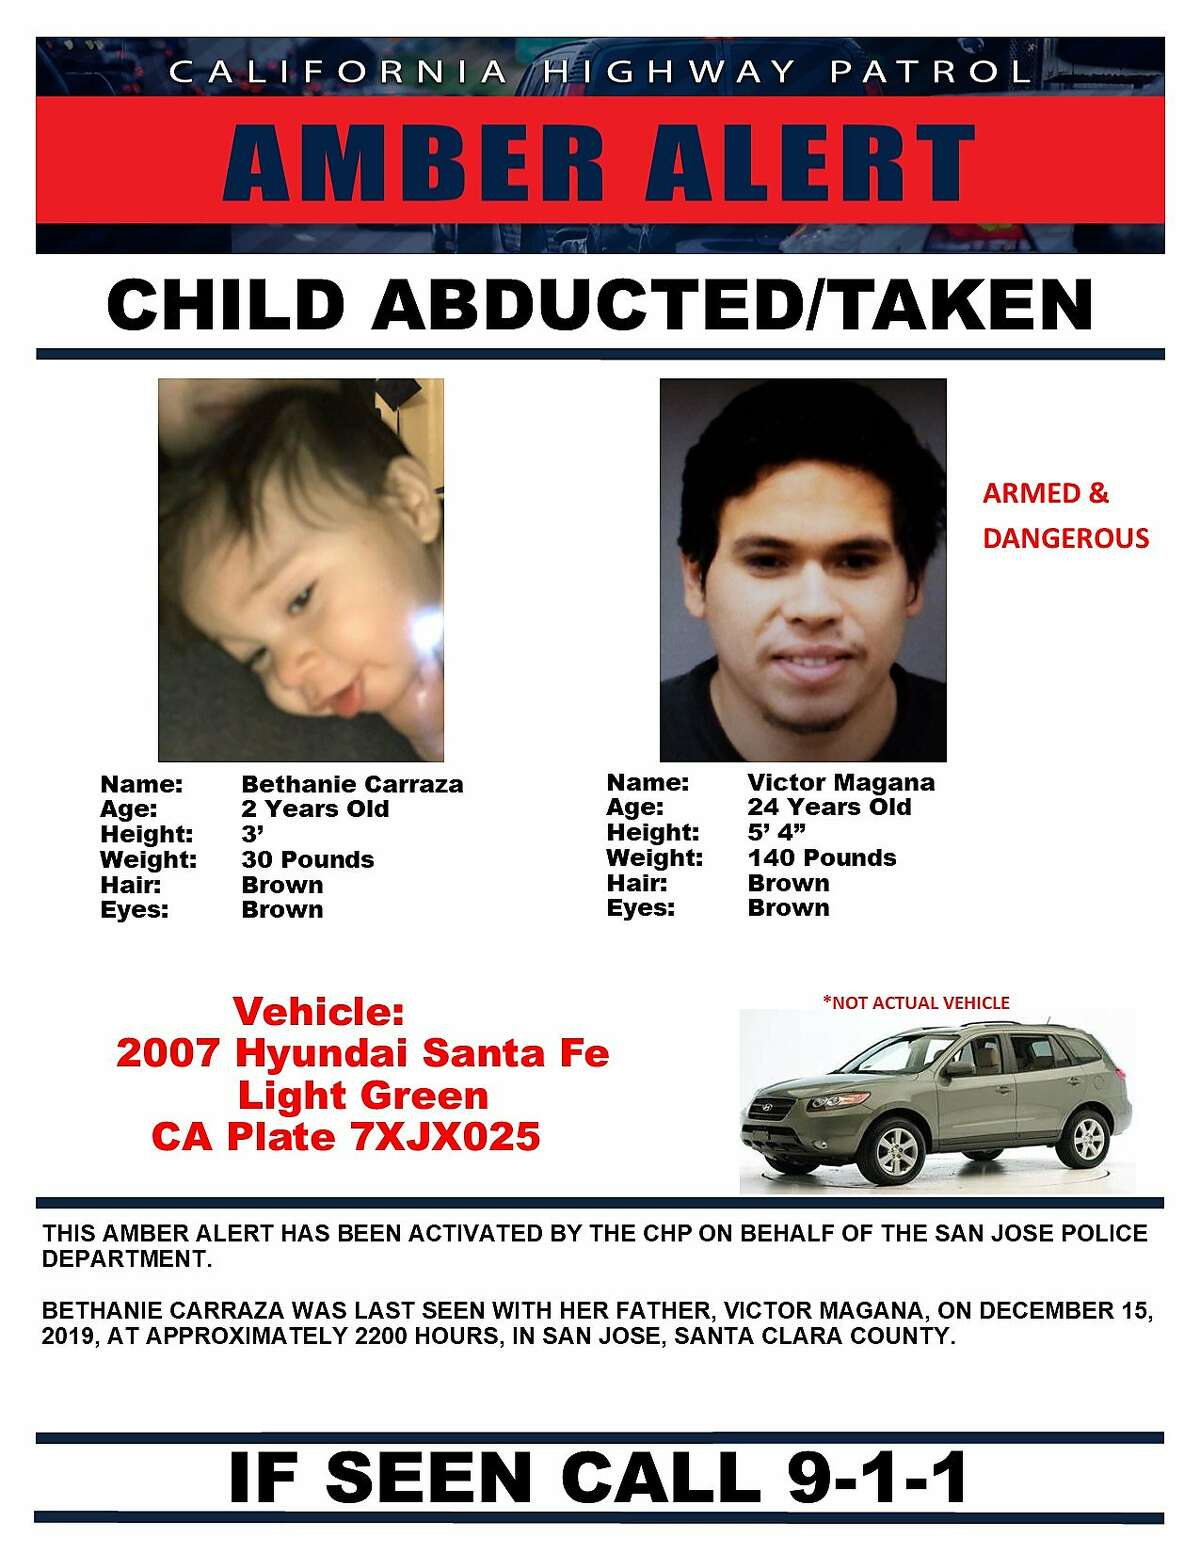 This Amber Alert was issued by the CHP on Dec. 16, 2019, after a father allegedly abducted his daughter in San Jose